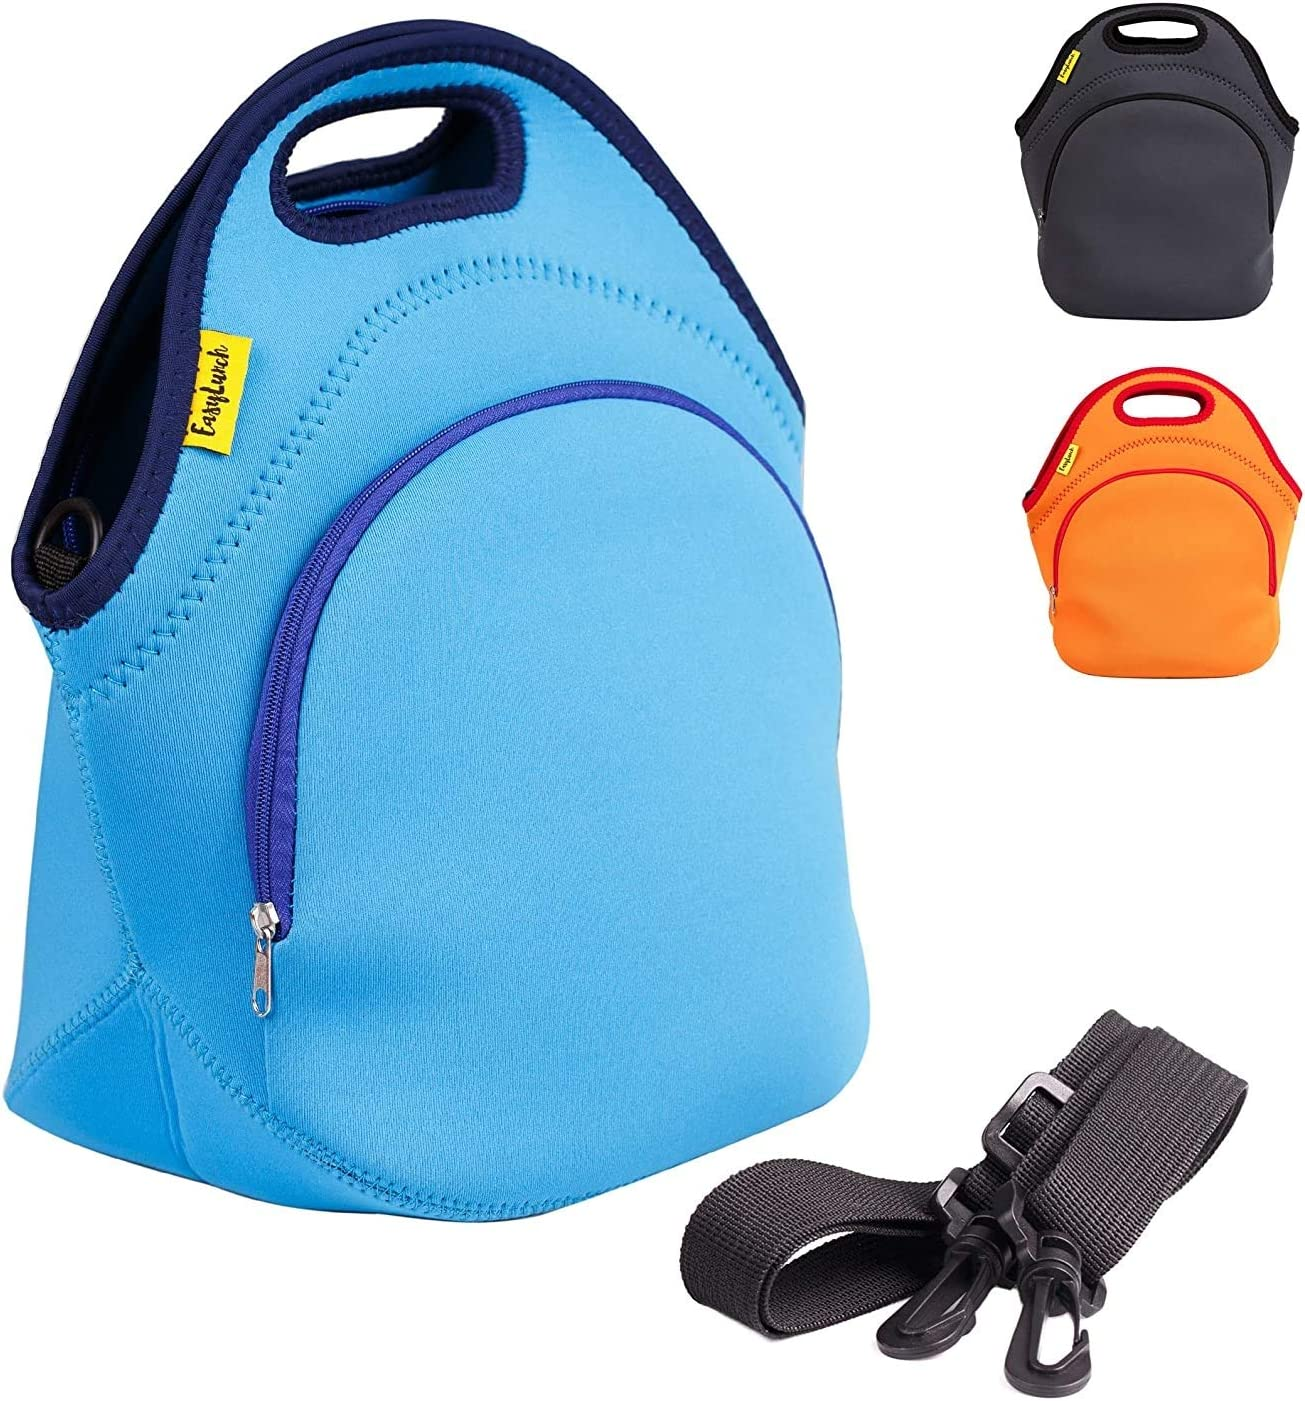 Neoprene Lunch Ranking TOP17 Bags Insulated Fashionable Box For - quality assurance Women